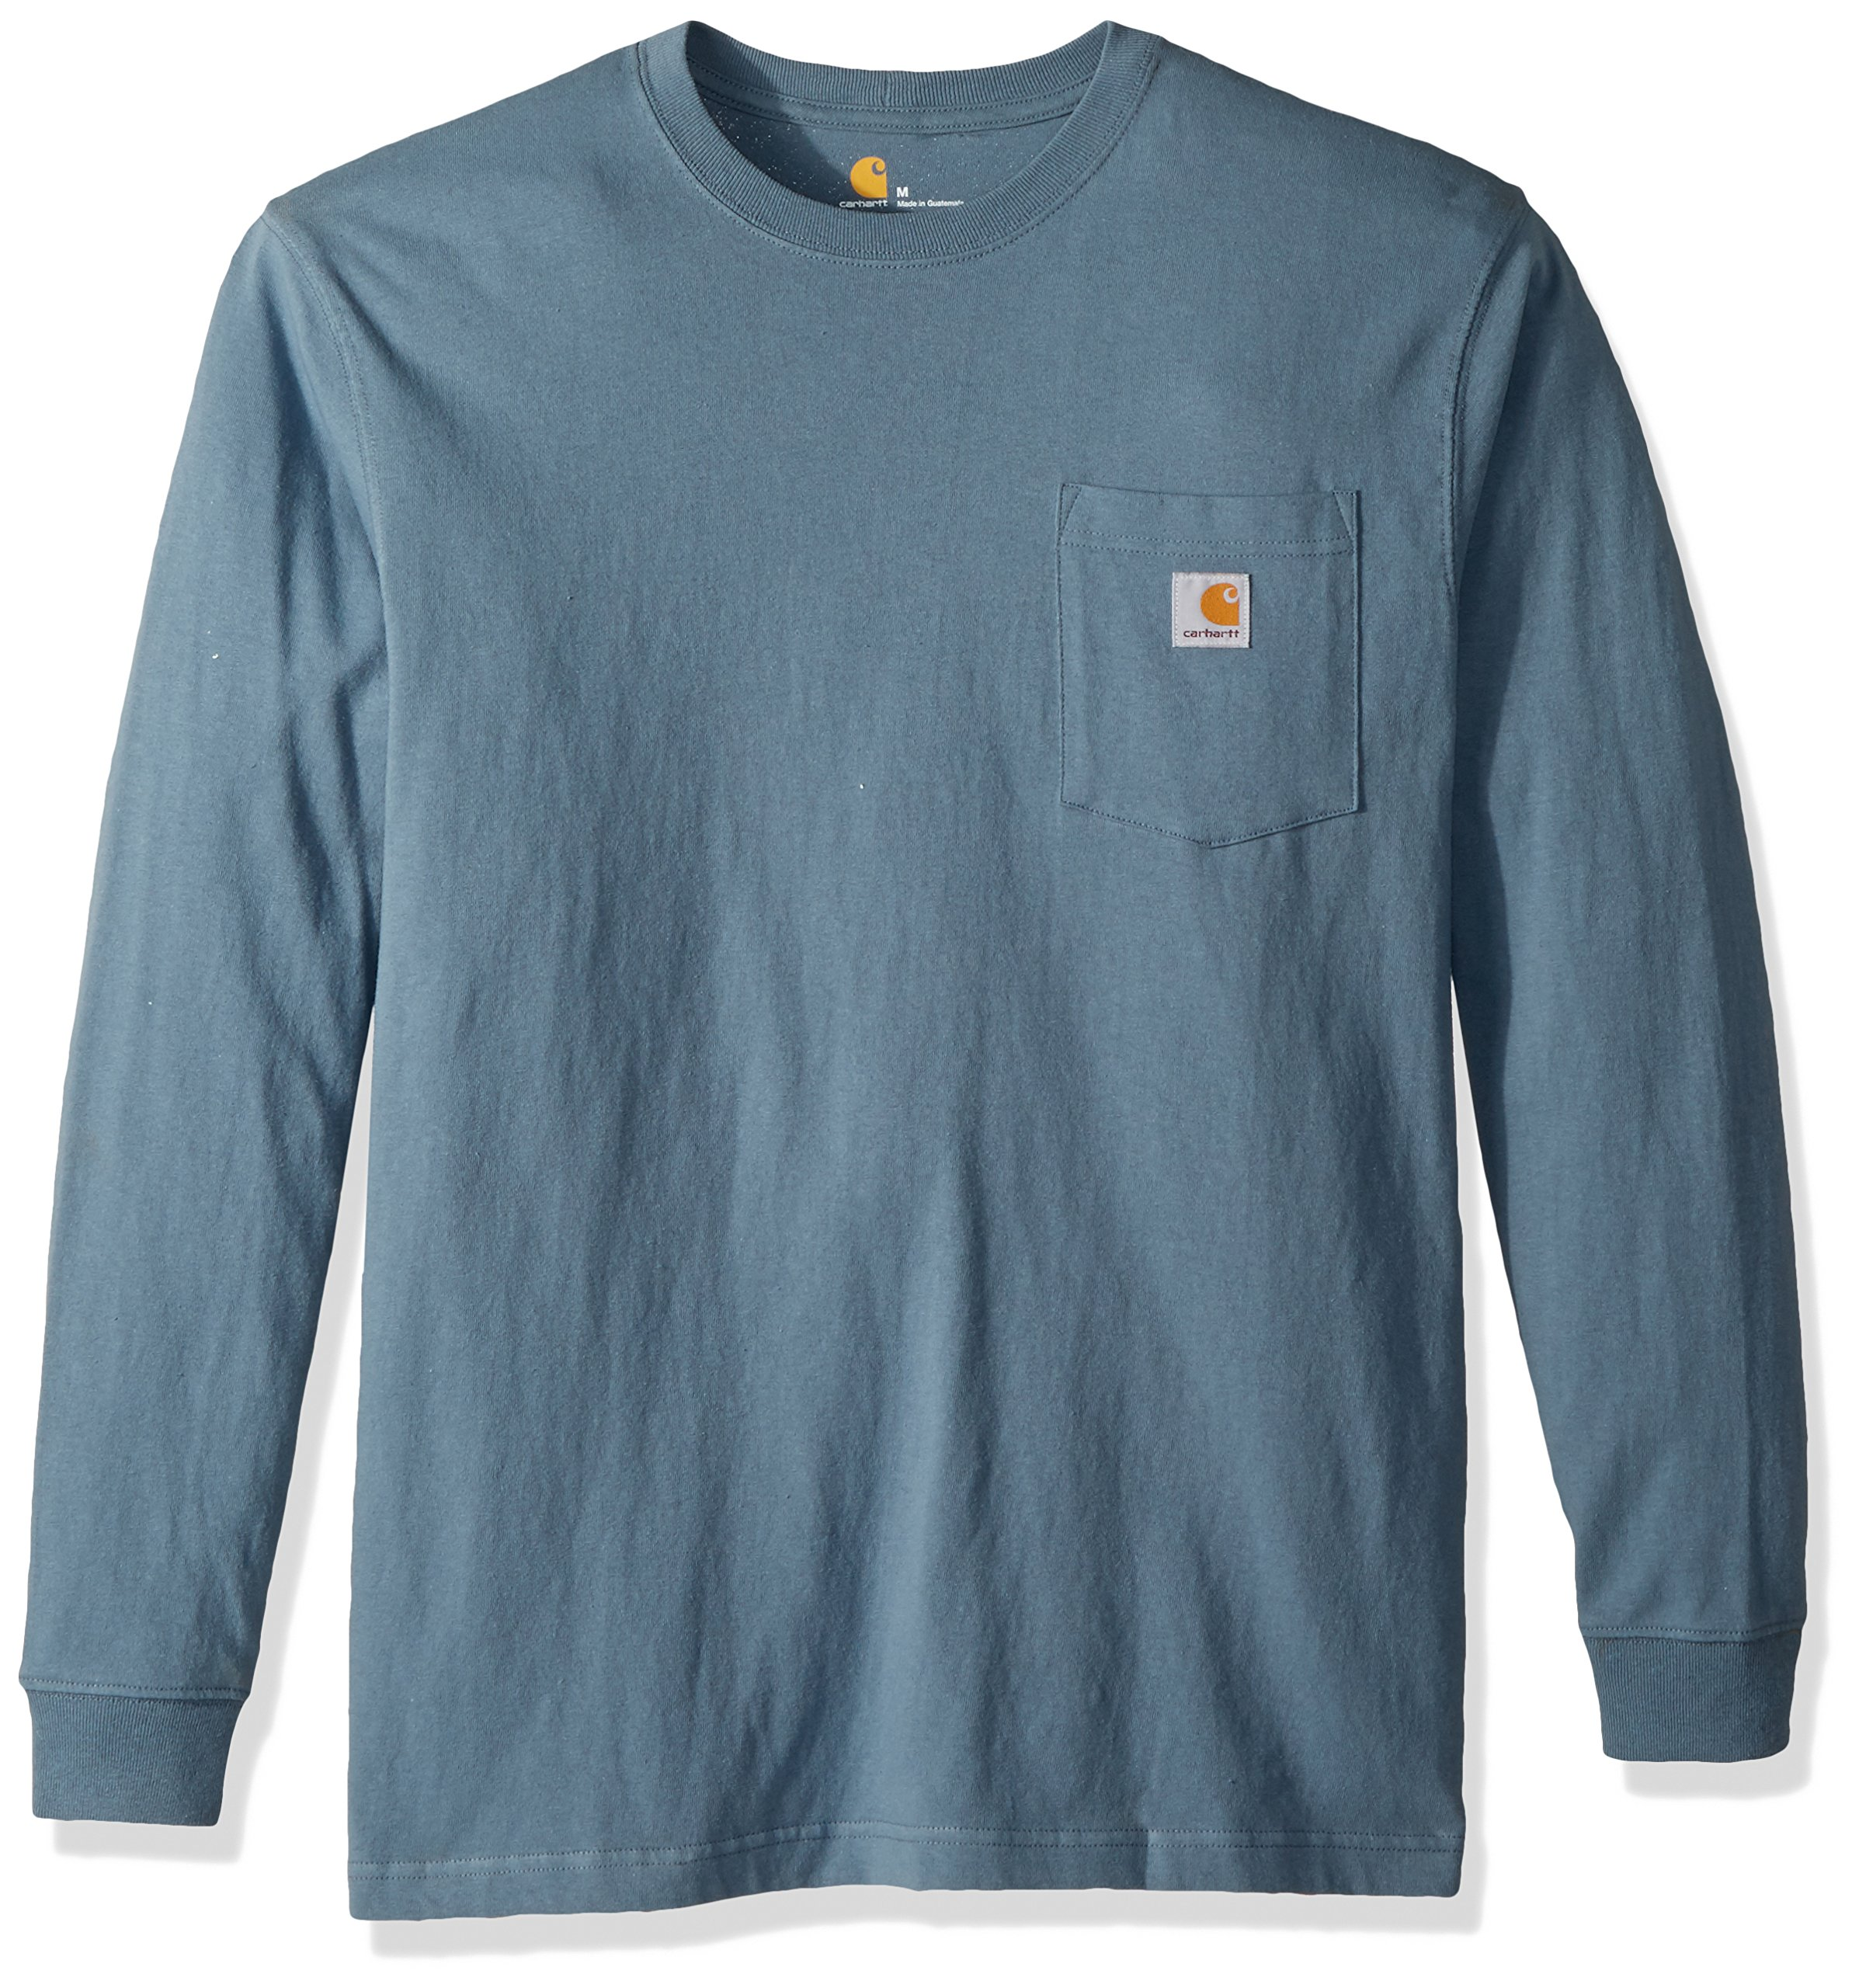 Carhartt Men's Workwear Pocket Long Sleeve T-Shirt K126, Steel Blue, 2X-Large